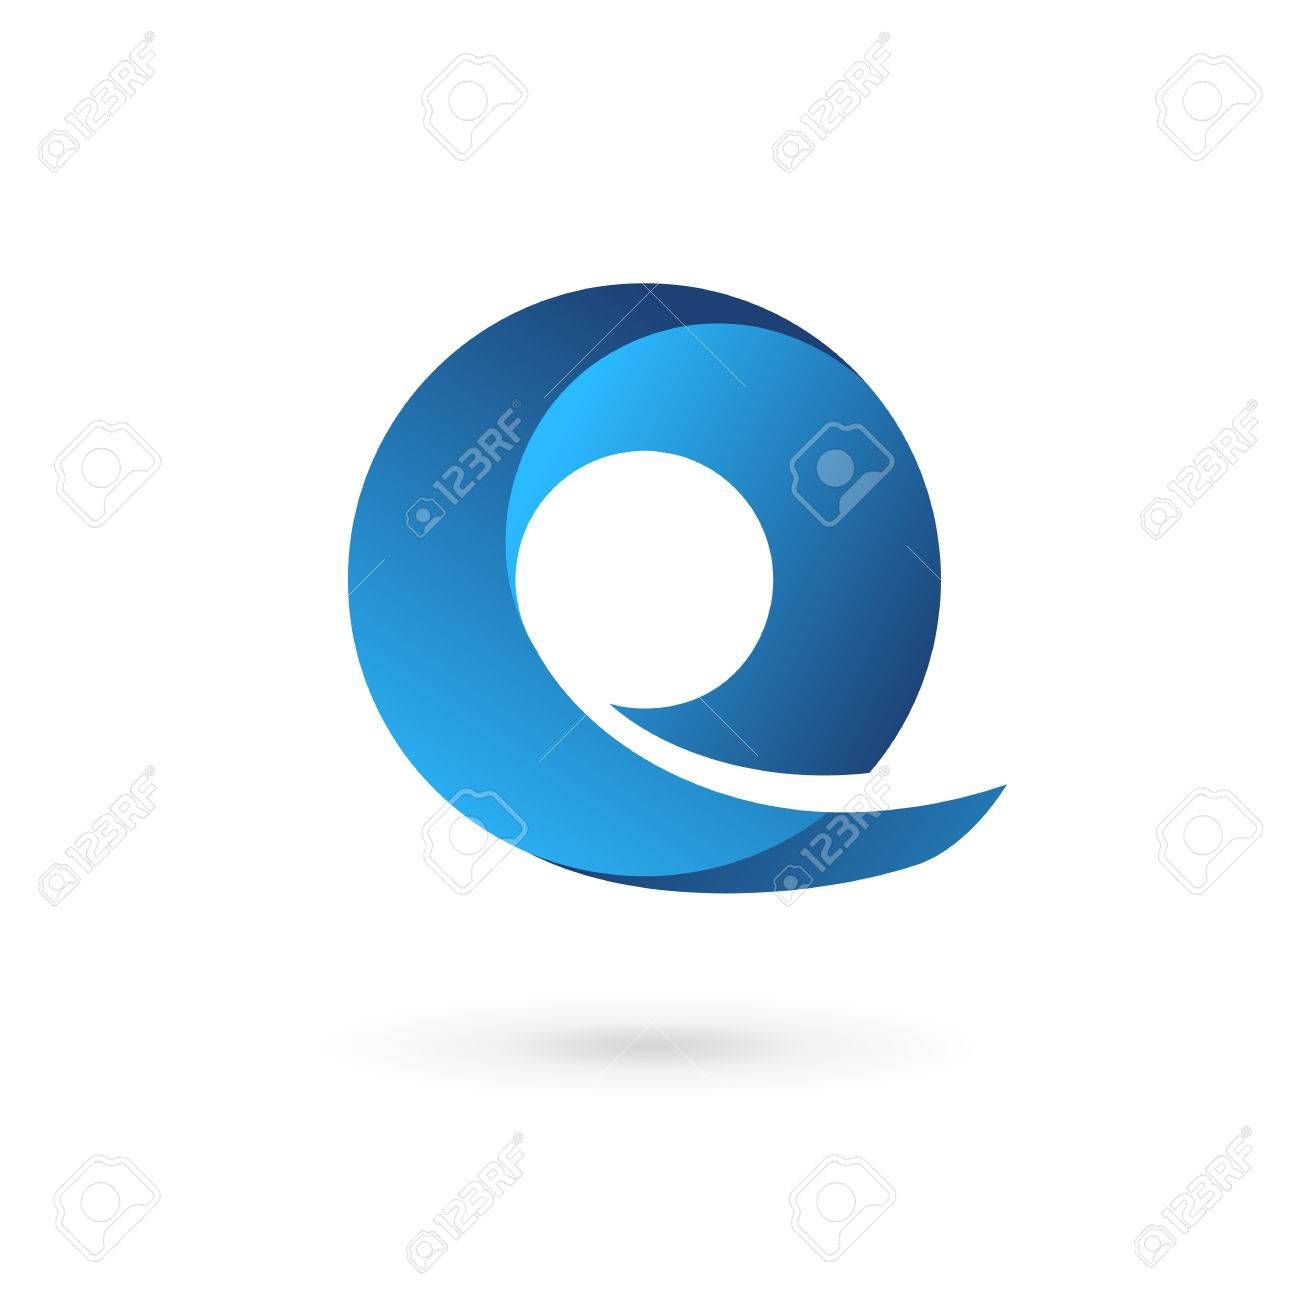 letter q stock photos pictures royalty free letter q images and